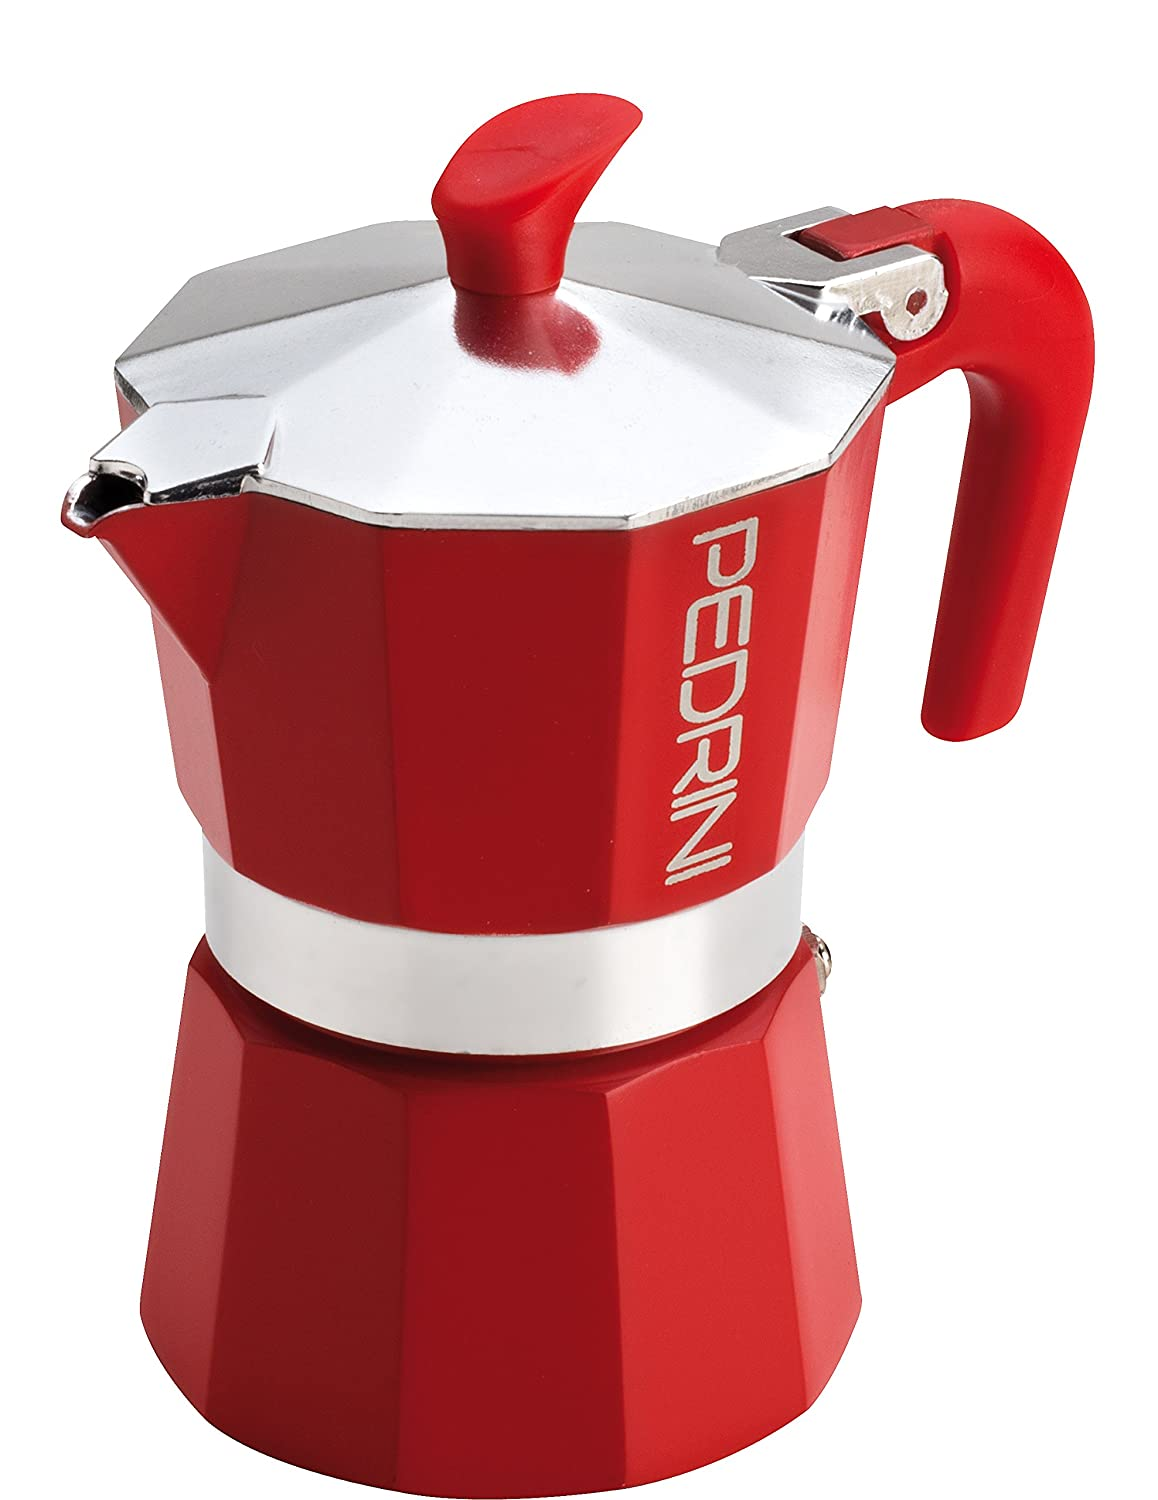 Pedrini Italy AmoraColor Moka Stovetop Espresso Maker with Red or Black Finish, 1 cup, 2 cup, 3 cup, 6 cup Caffettiera Rossa 3Tz Pedrini